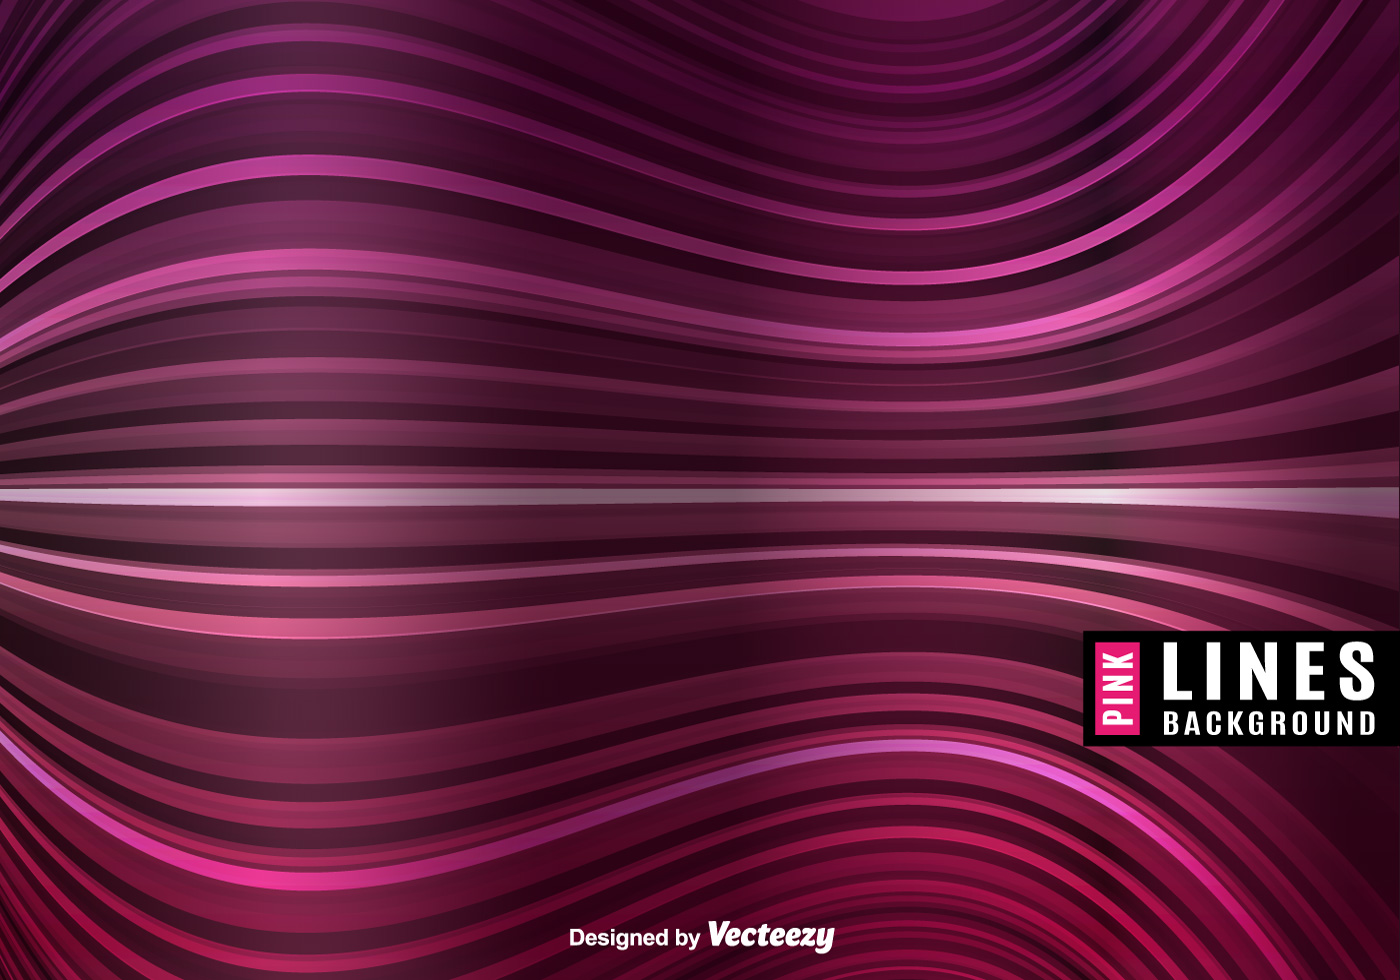 Pink Credit Card Login >> Purple abstract background vector - Download Free Vector Art, Stock Graphics & Images